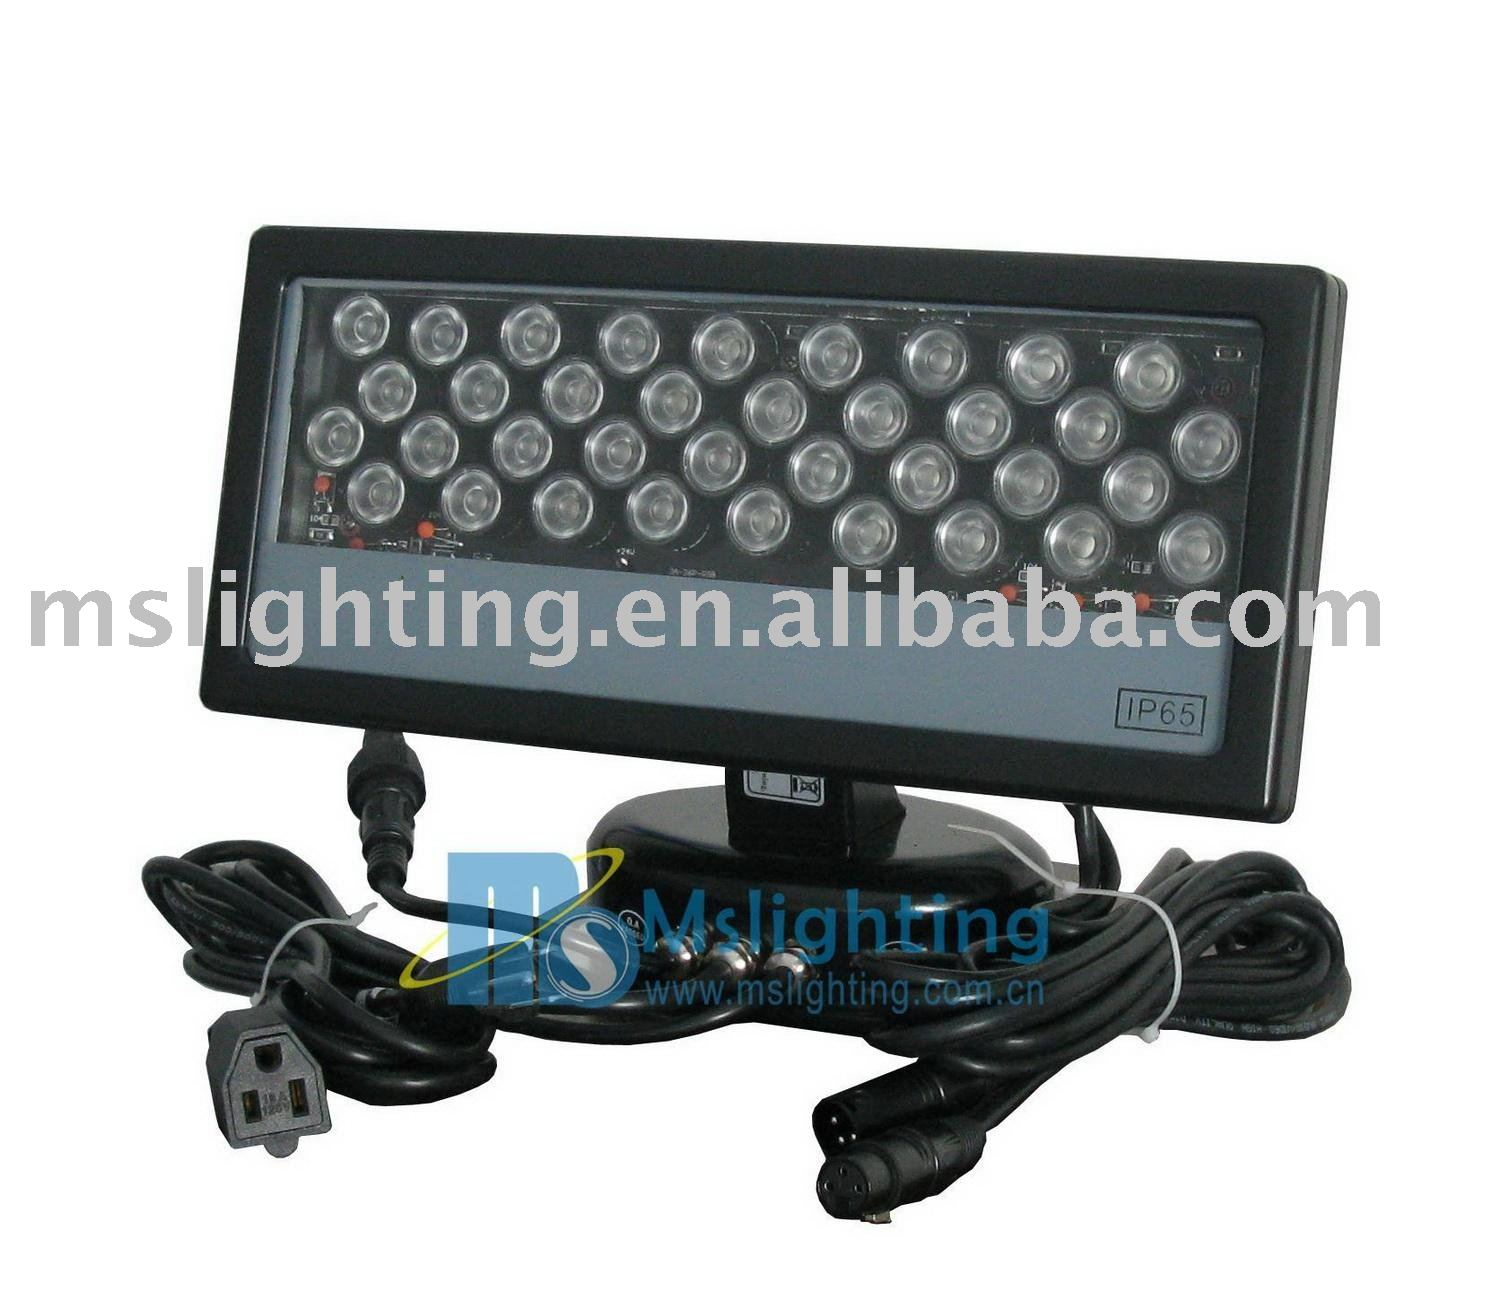 buy low prices 36w rgb led wall washer. Black Bedroom Furniture Sets. Home Design Ideas